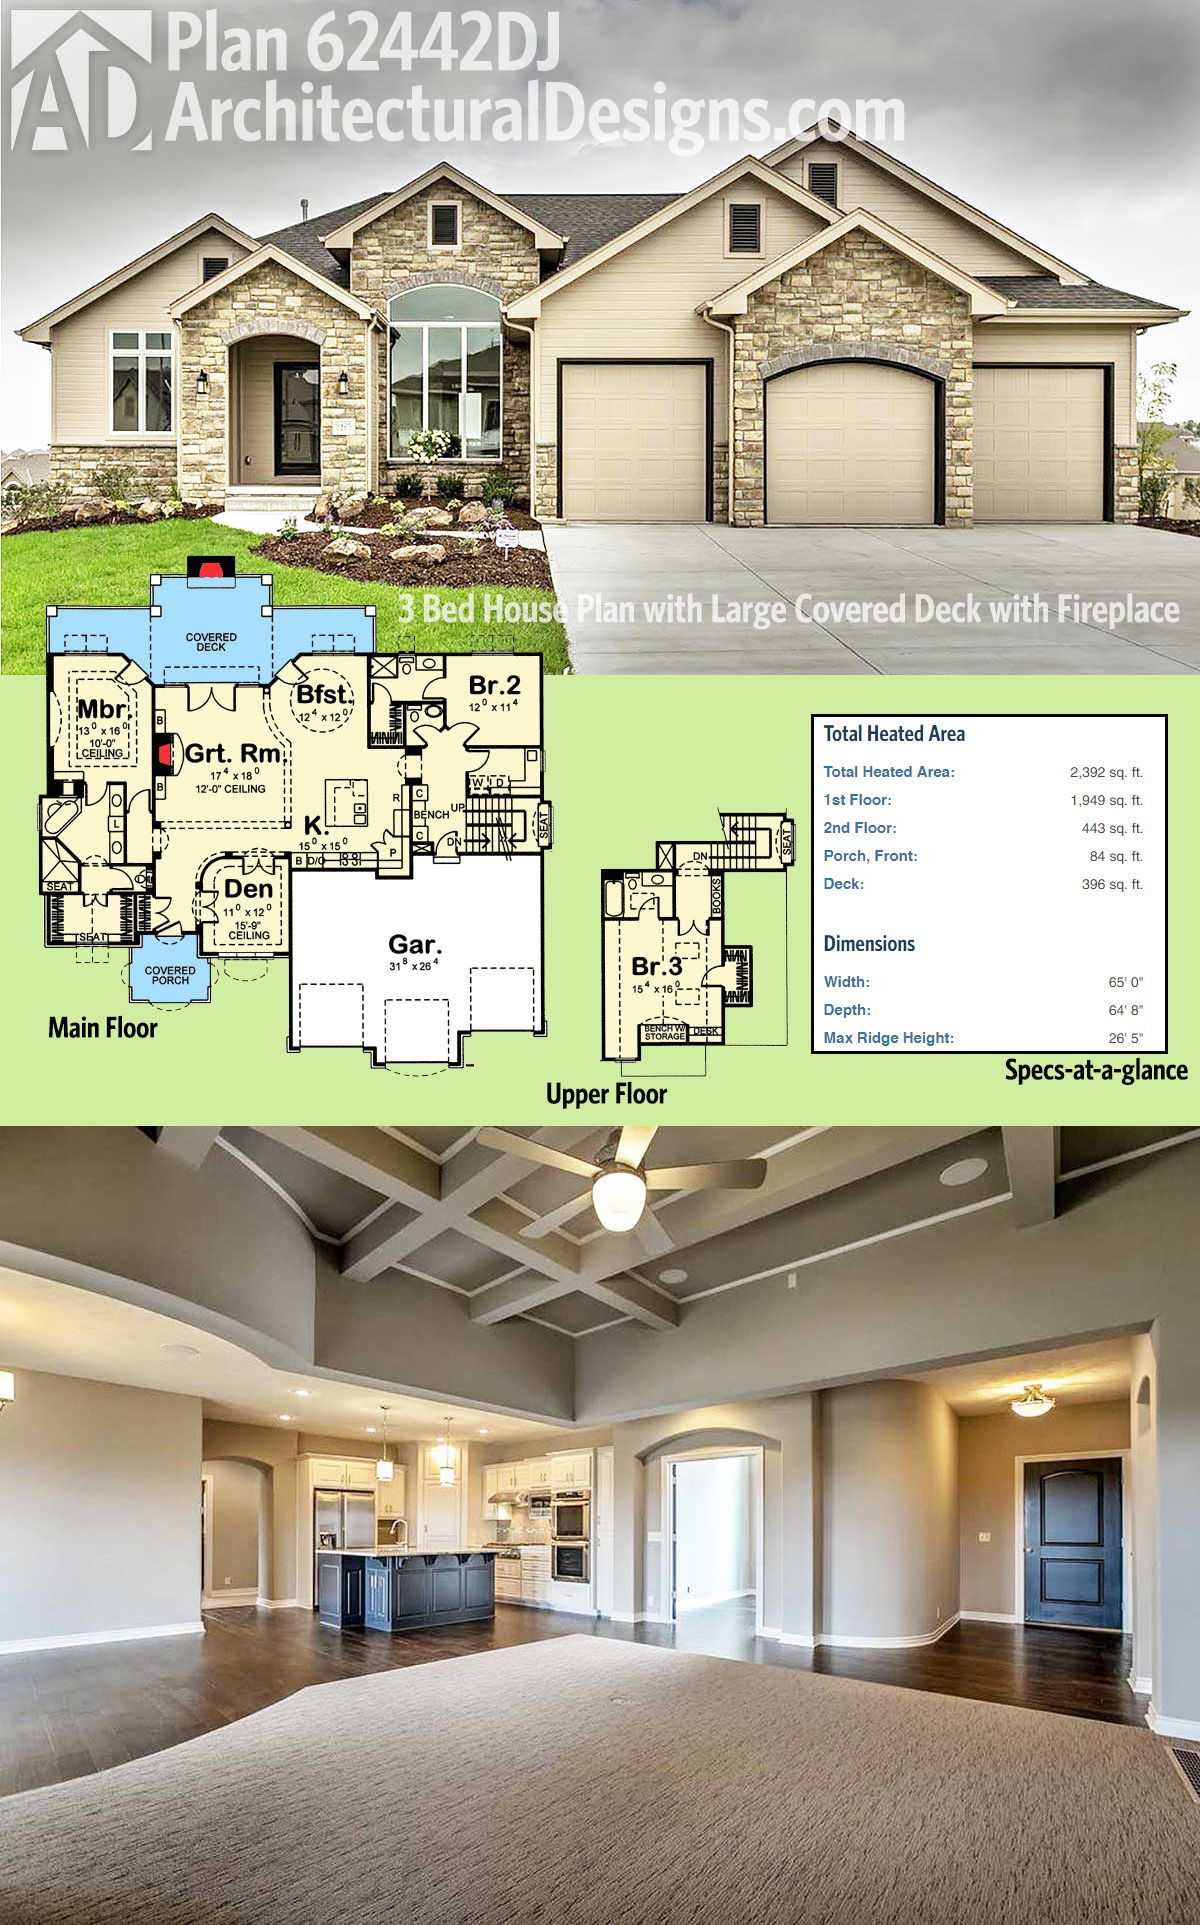 Plan 62442DJ: 3 Bed House Plan With Large Covered Deck